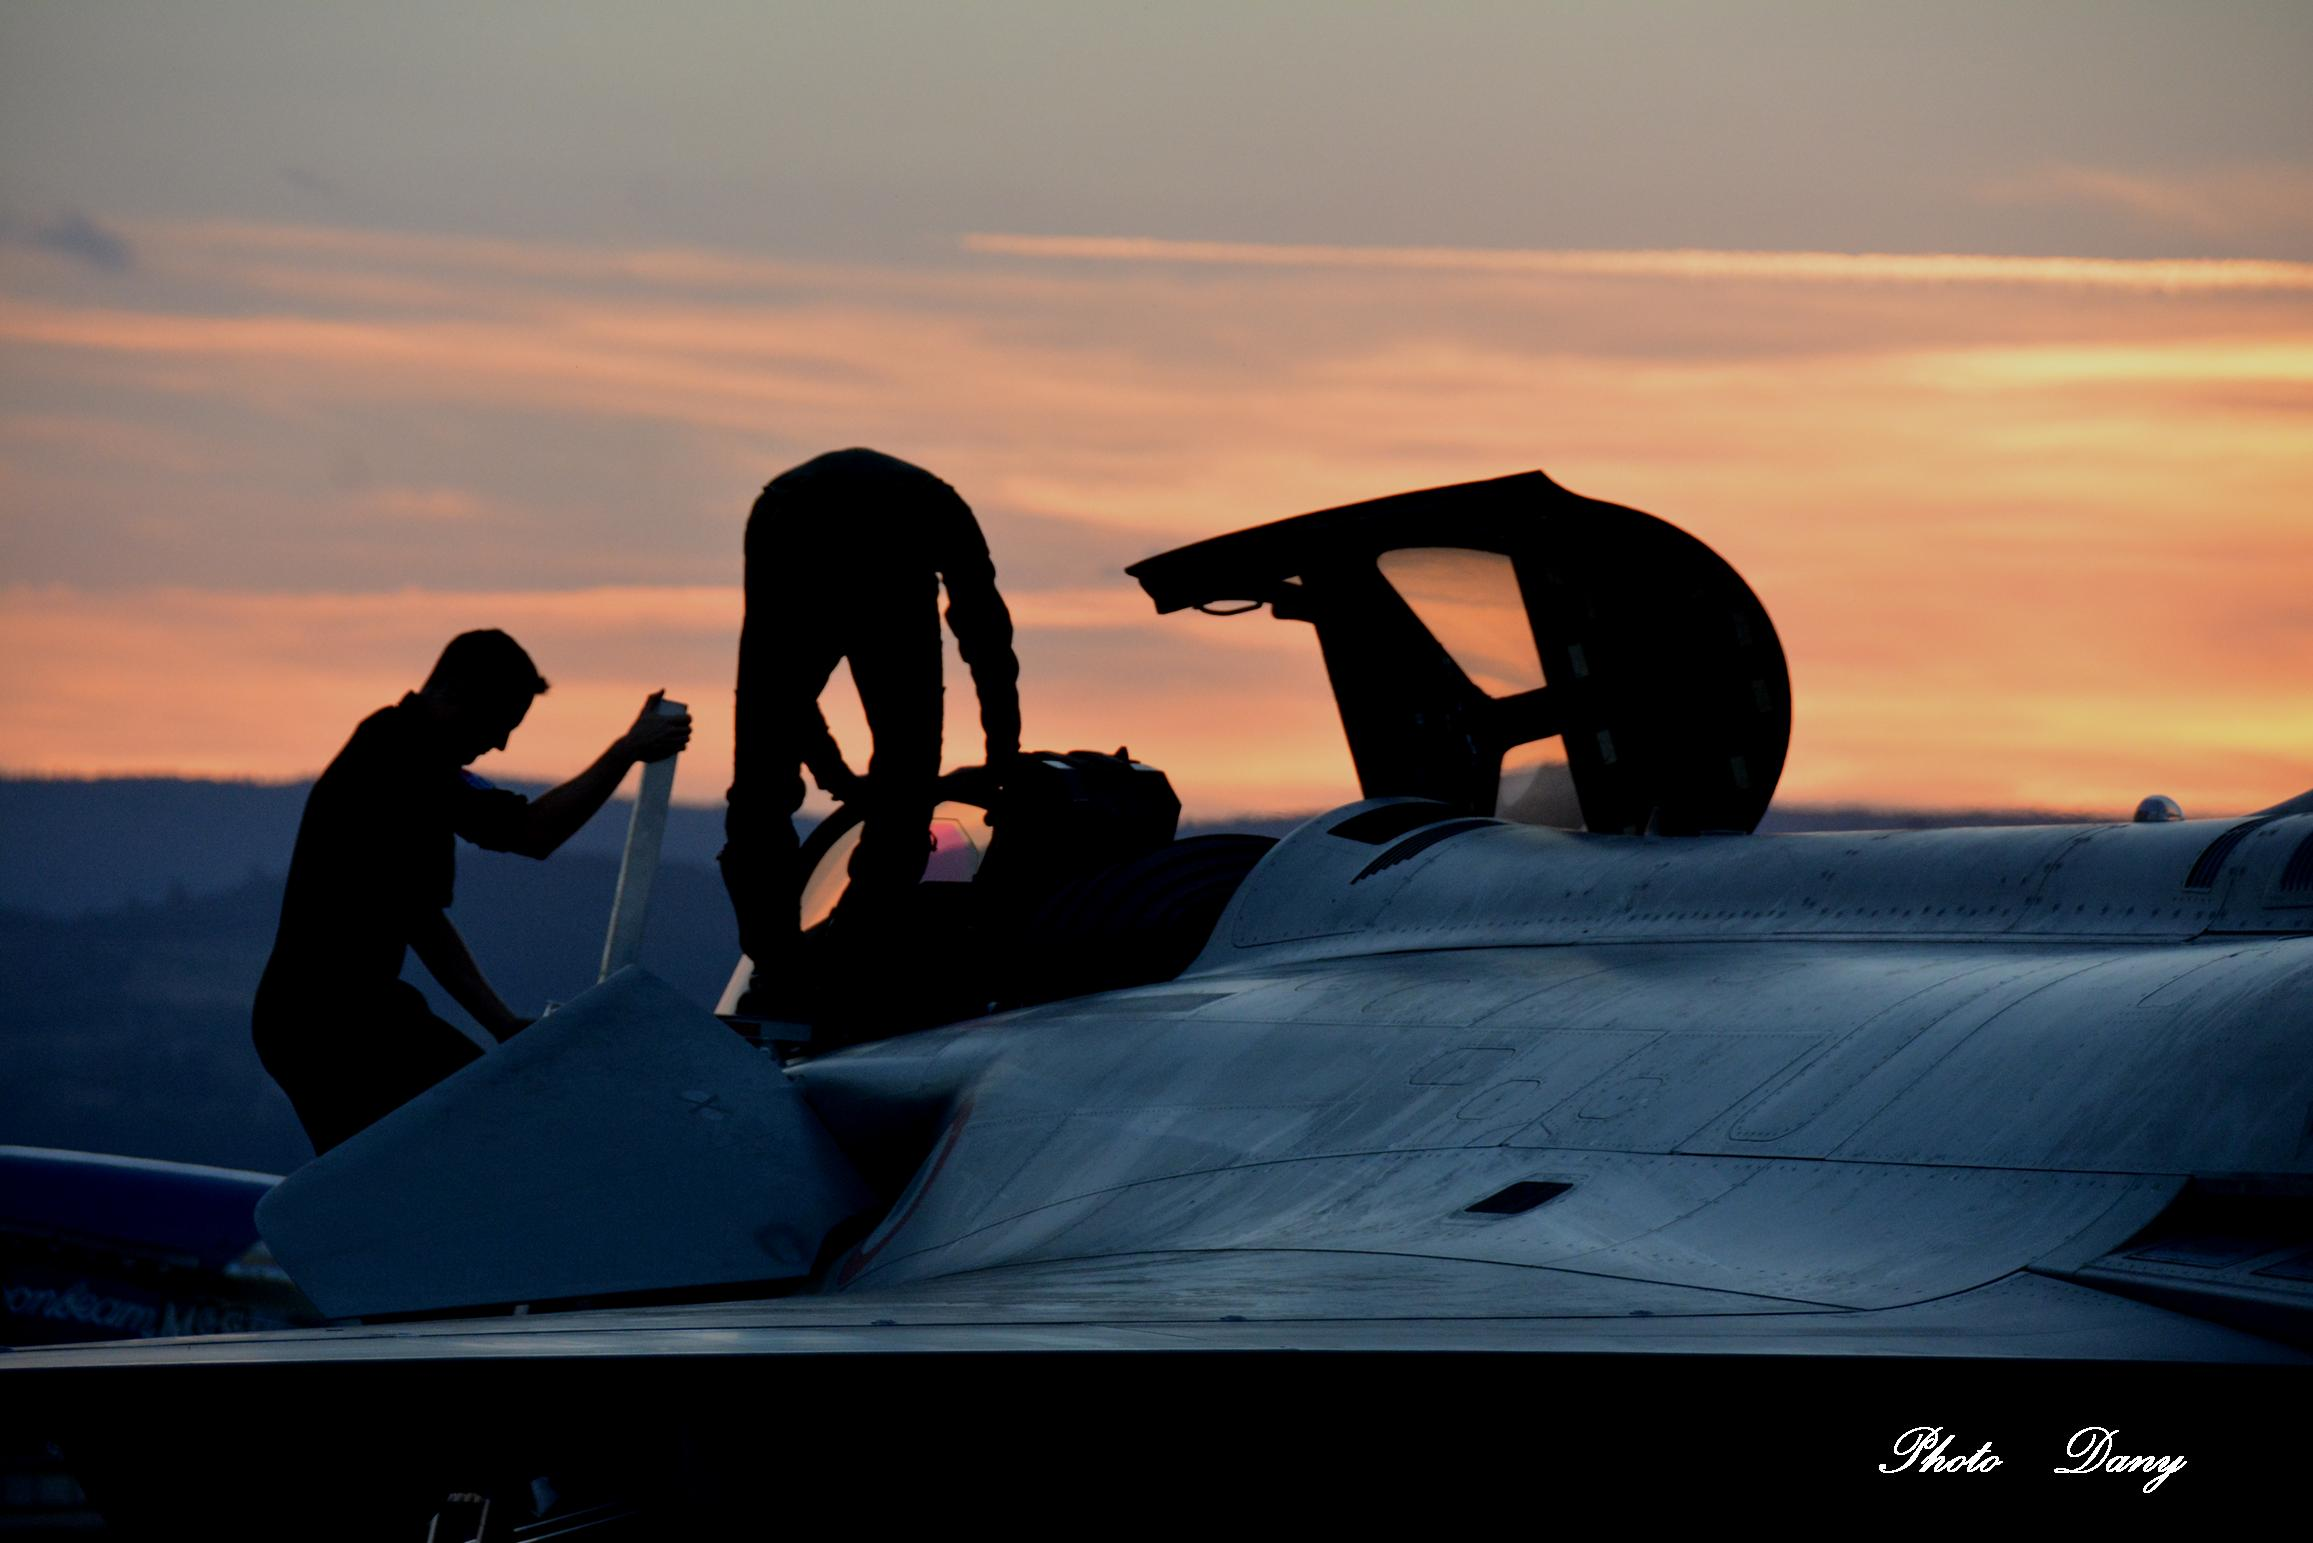 Rafale sunset - 2